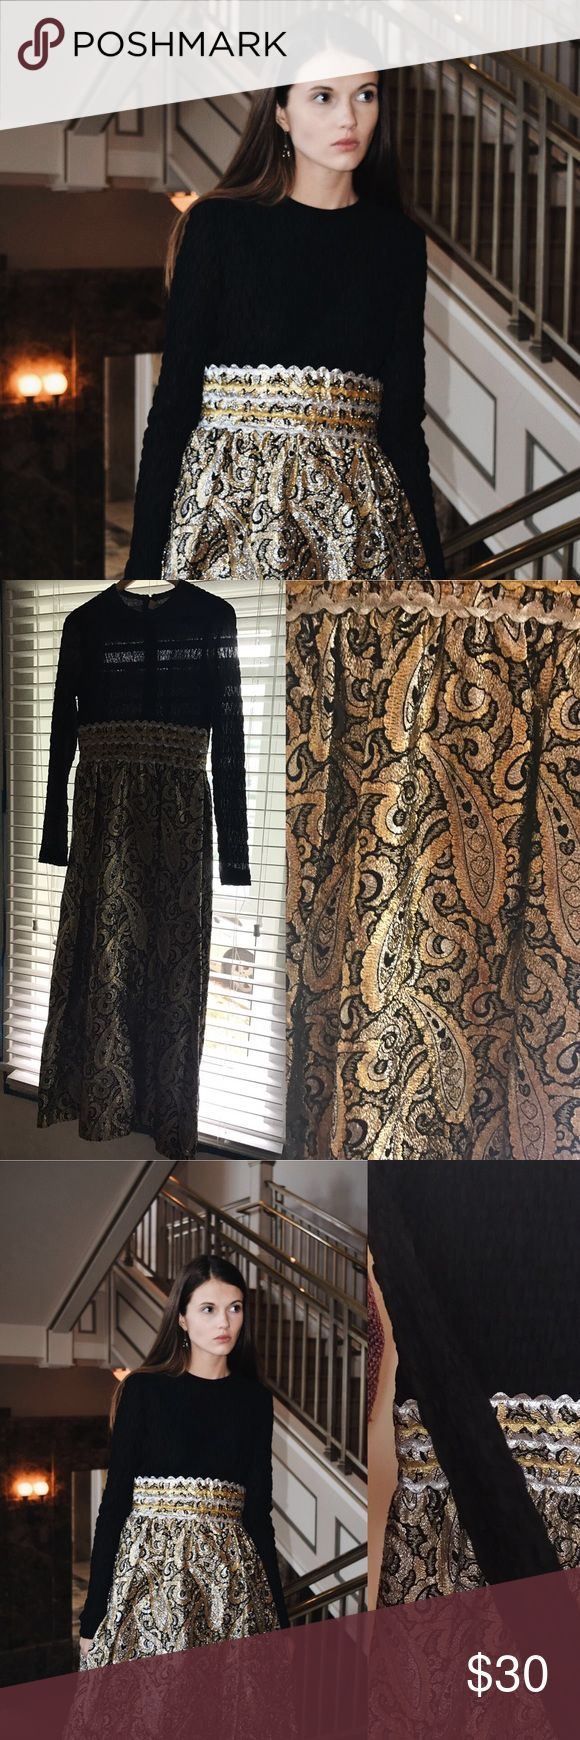 Vintage Black and Gold Maxi Dress Perfect for the holidays. No label. Size M. Gold metallic thread skirt and back zip closure. Long sleeve, perfect for the holidays. Vintage Dresses Maxi